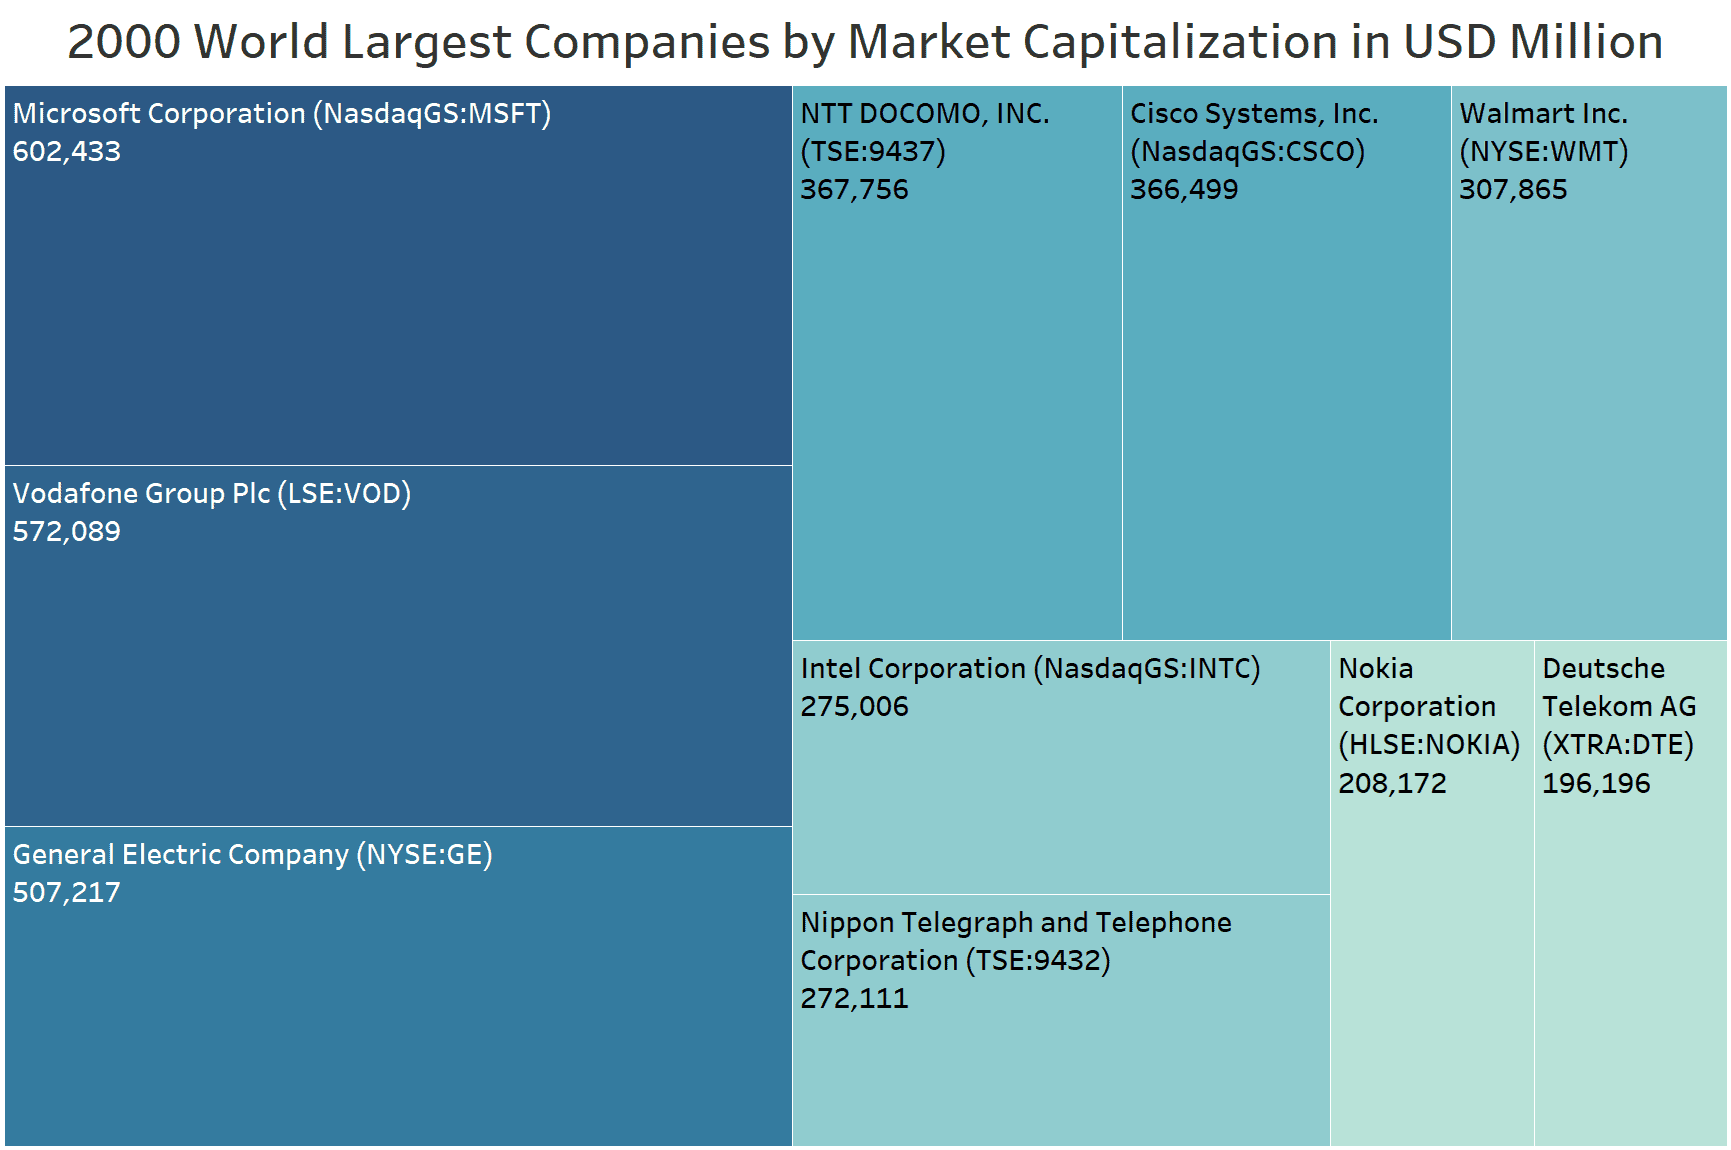 2000 World Largest Companies by market capitalization